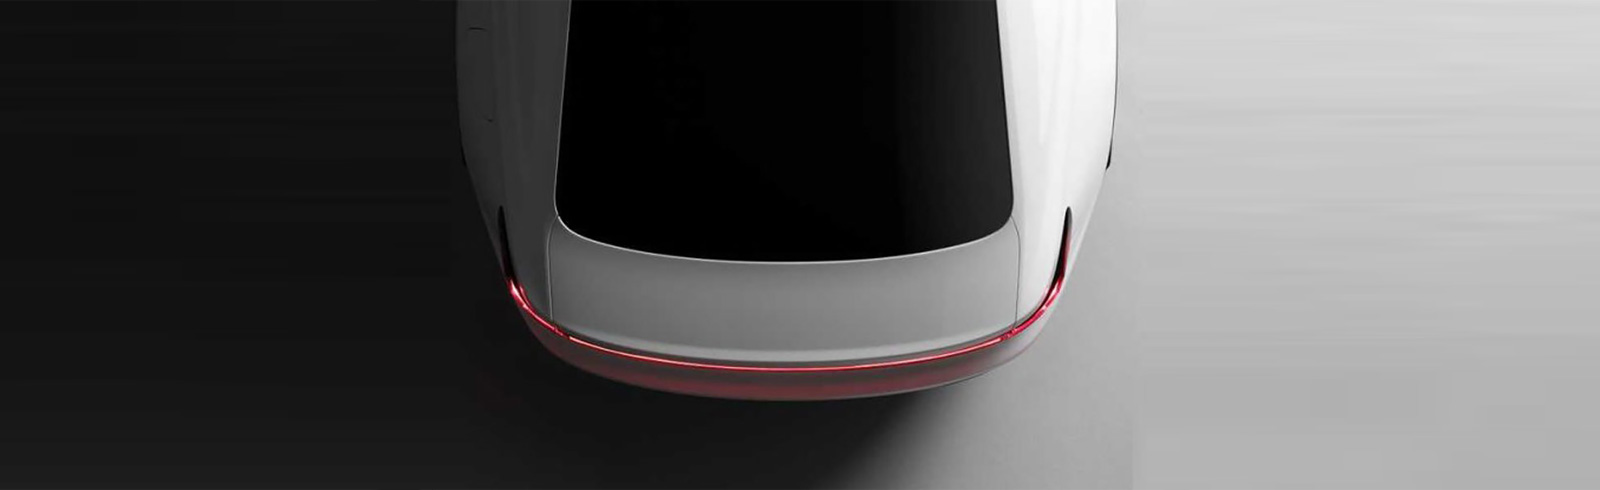 Pure-electric Polestar 2 will be unveiled on February 27